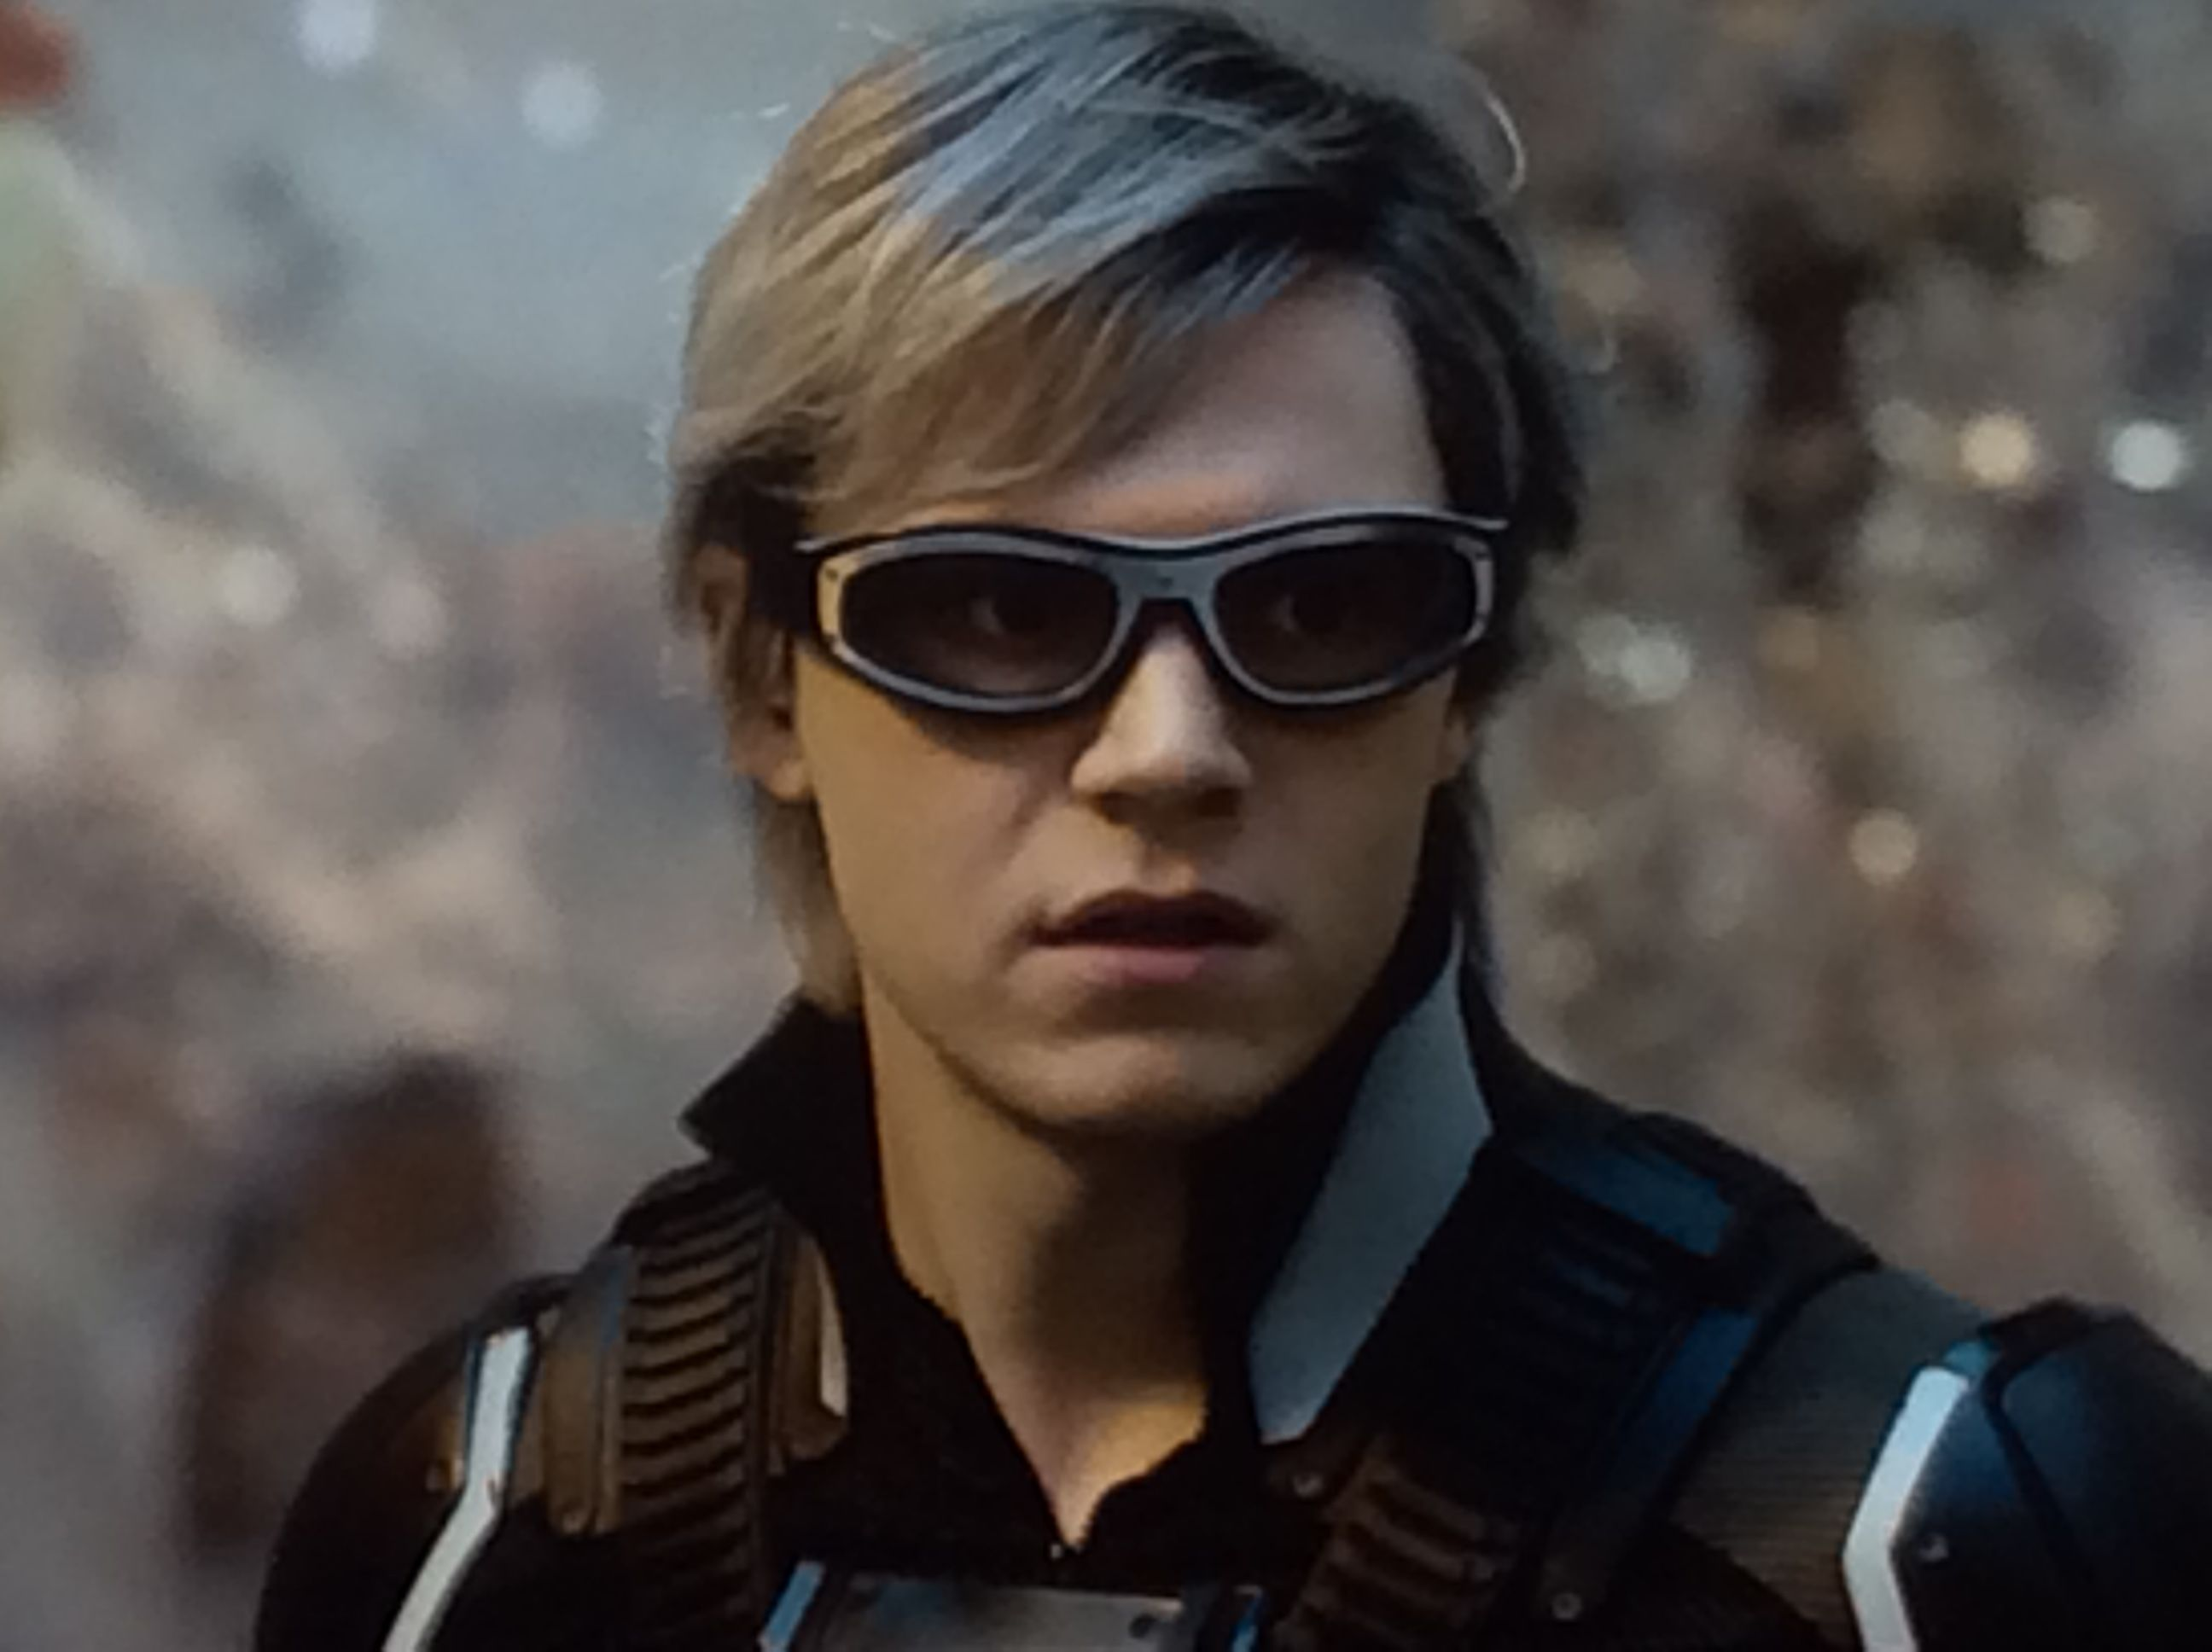 Quicksilver X X Men Apocalypse Evan Peters Evan Peters Peter Maximoff Quicksilver Xmen